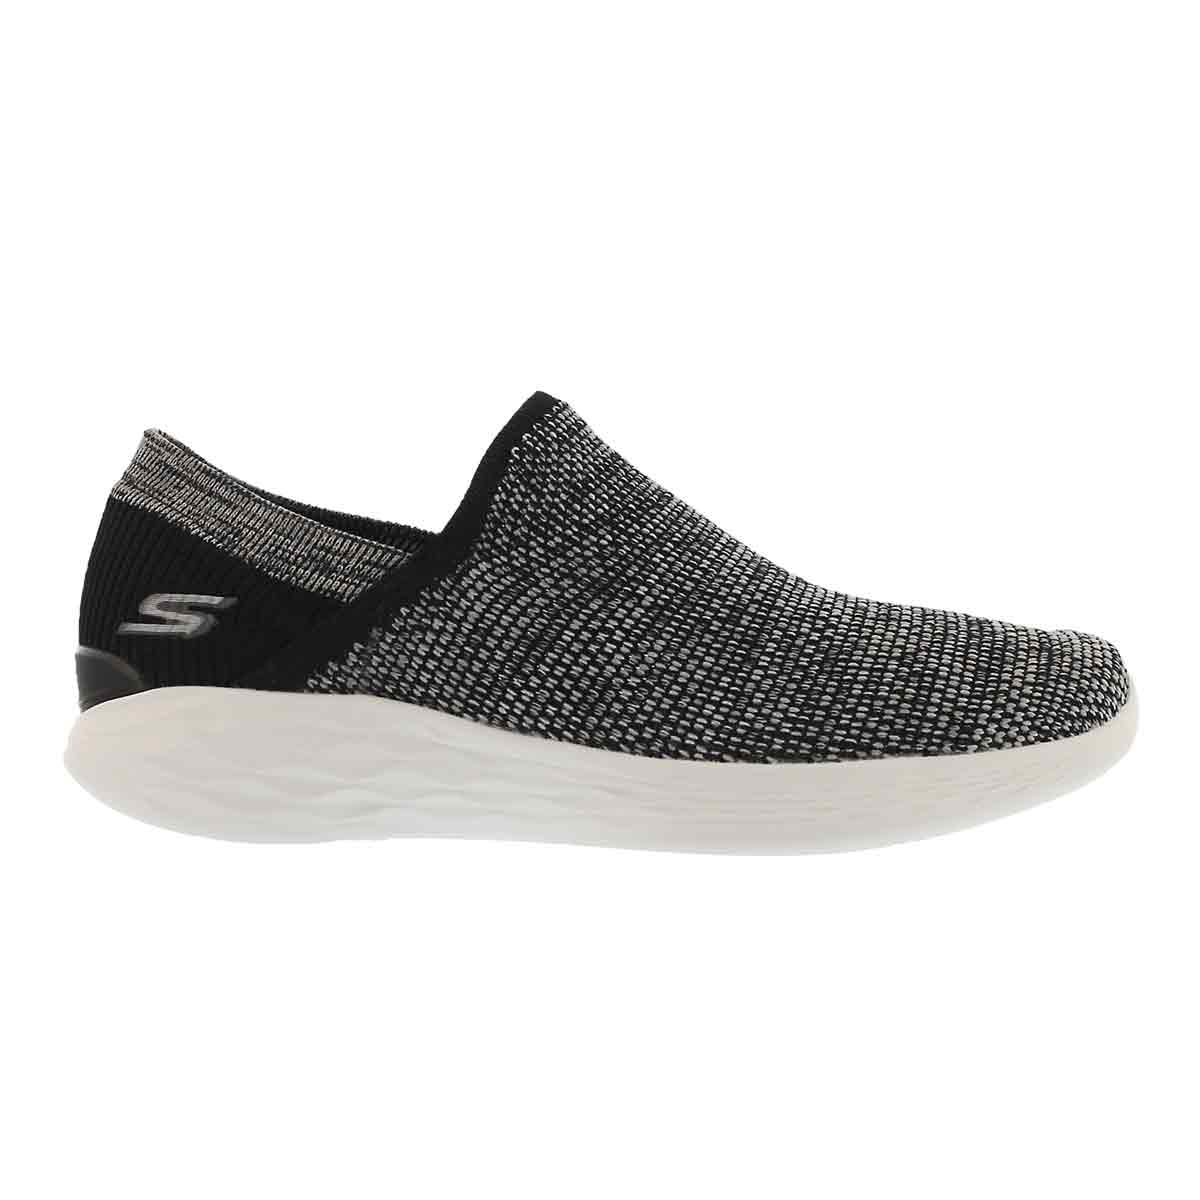 Lds YOU Rise blk/wht slipon walking shoe